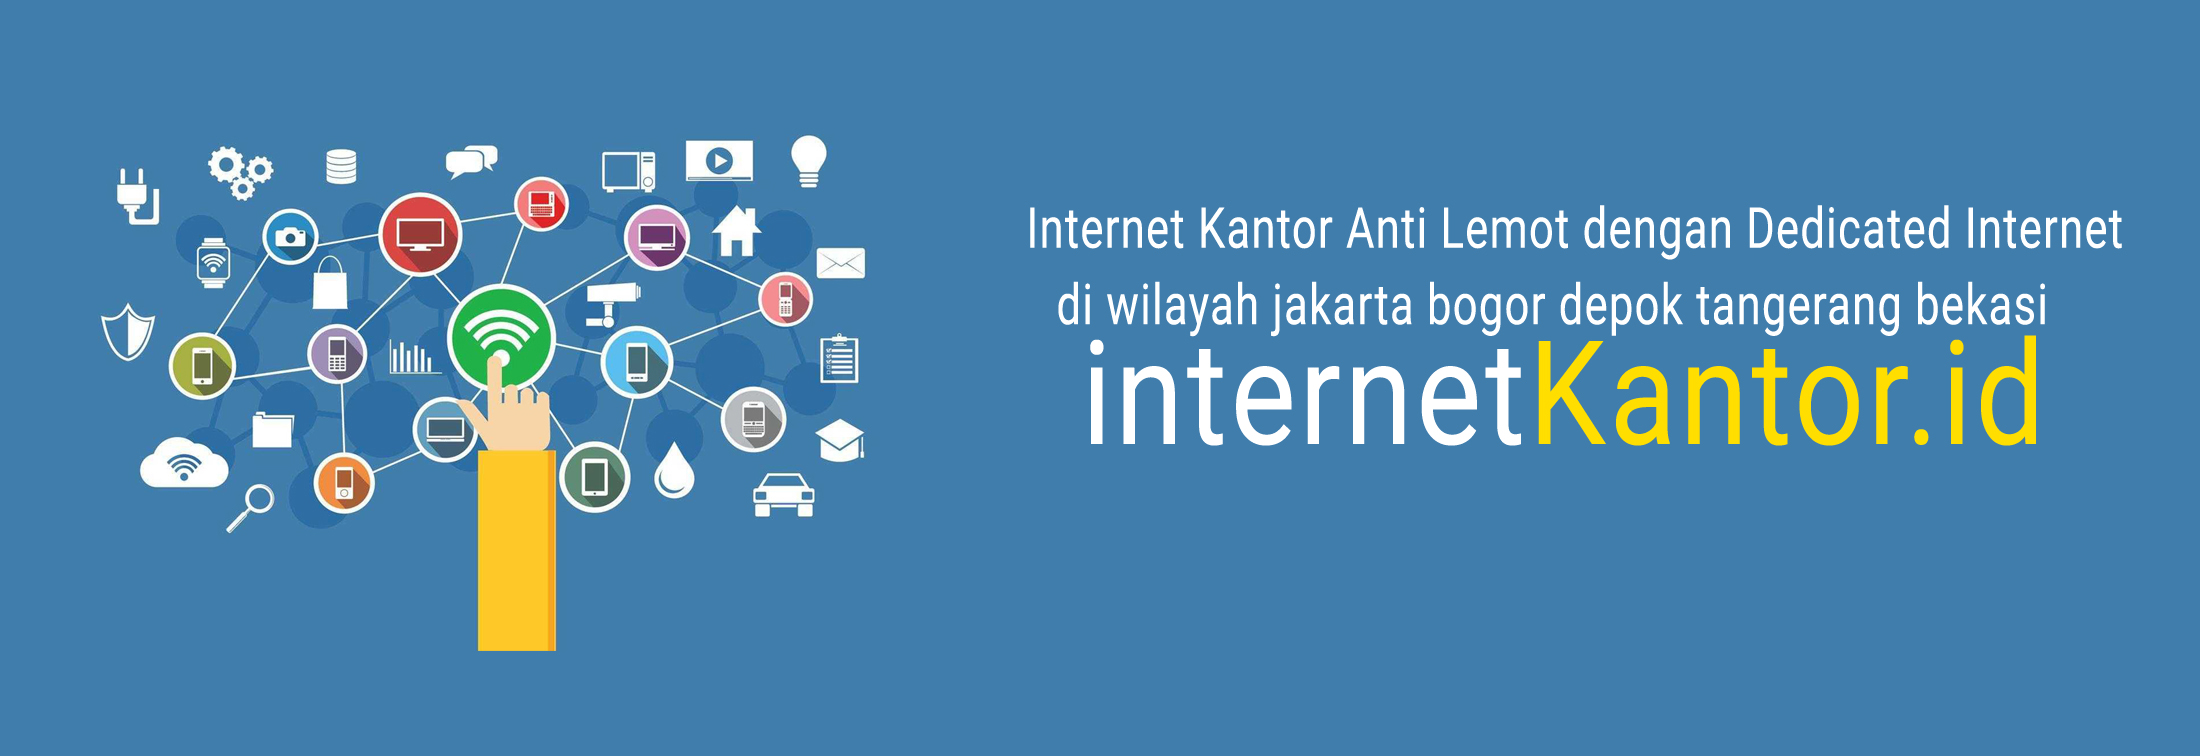 Internet Kantor Anti Lemot dengan Dedicated Internet